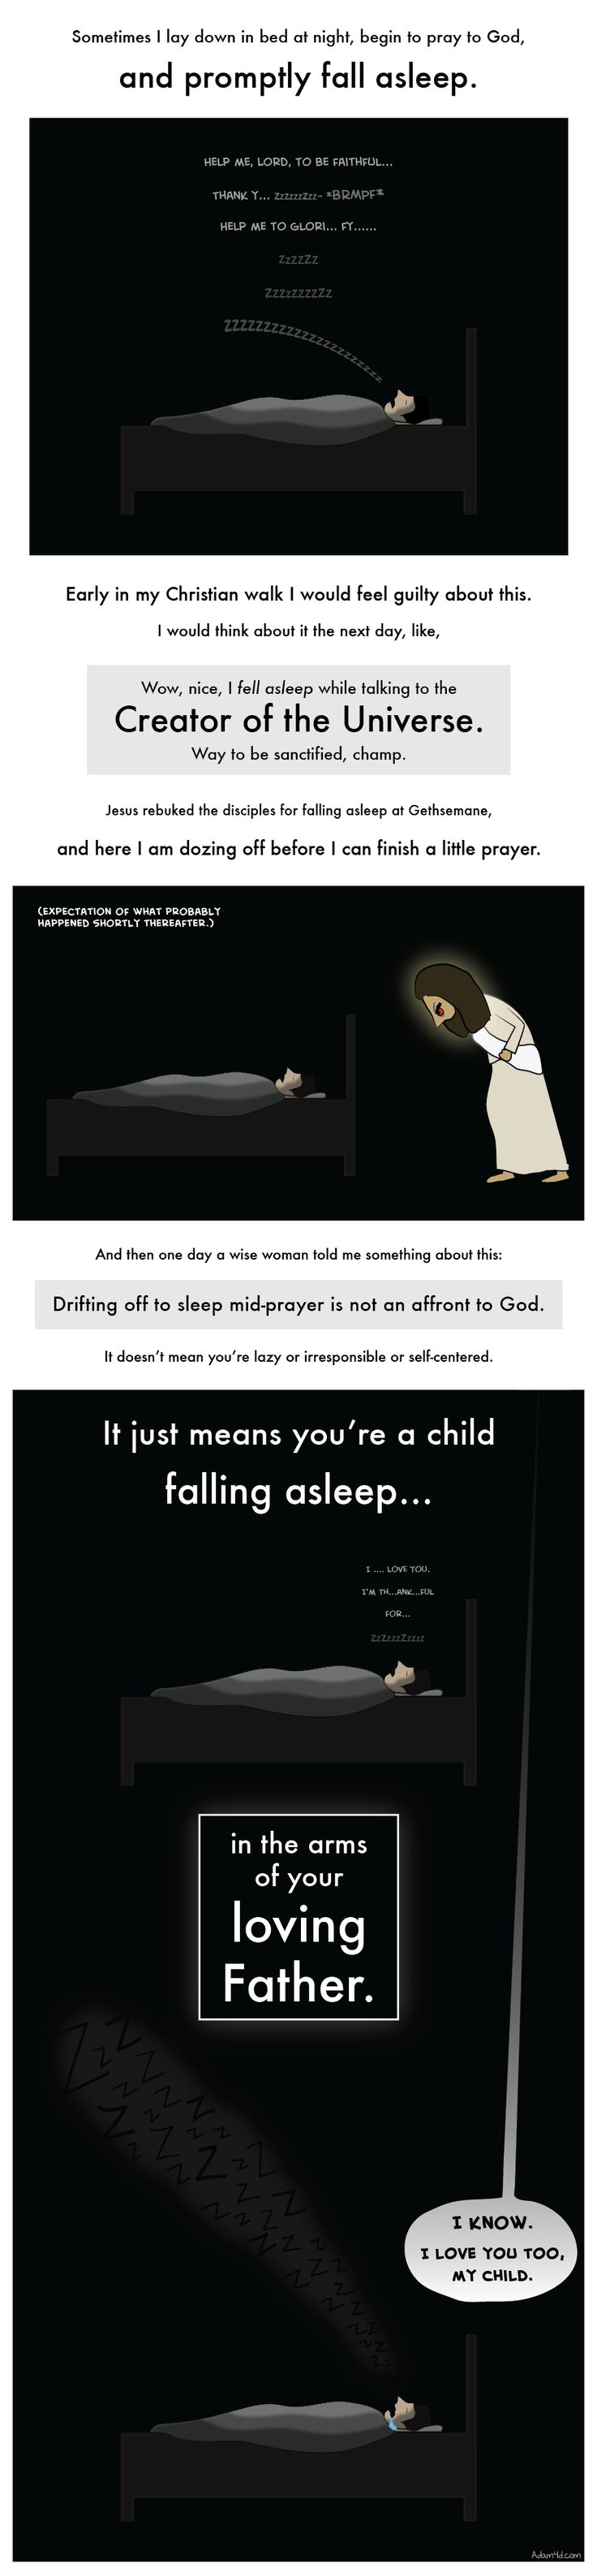 Another pinner wrote: I always praise, confess, and give thanks to the Lord at the beginning of my prayers, because He already knows my needs. If I awake in the middle of the night, I try to pick up where I left off.